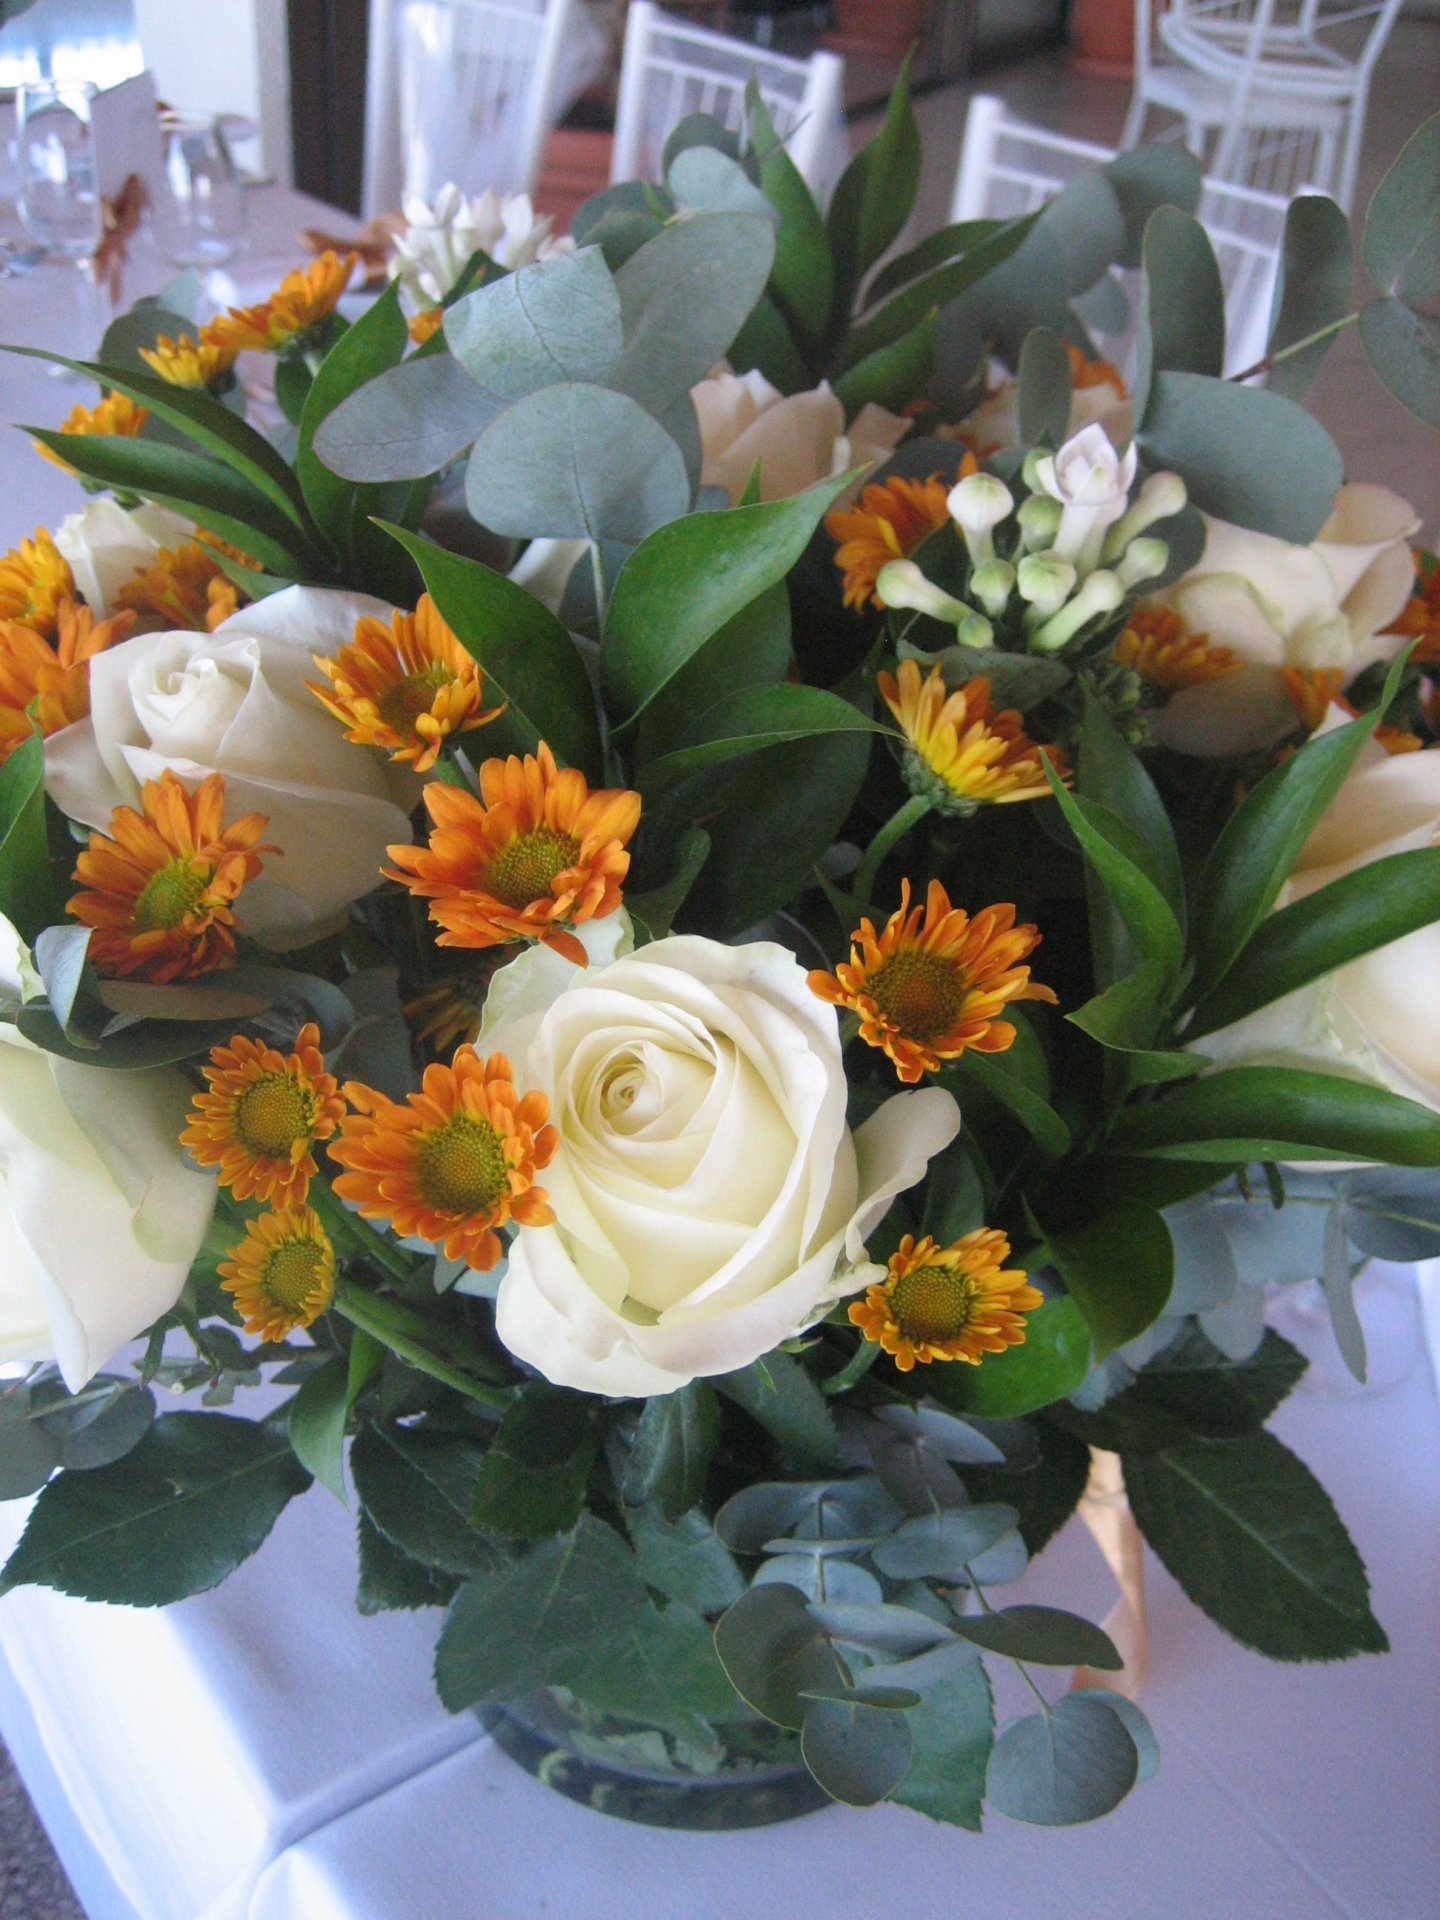 burnt orange chrysanemums, white carnations & roses